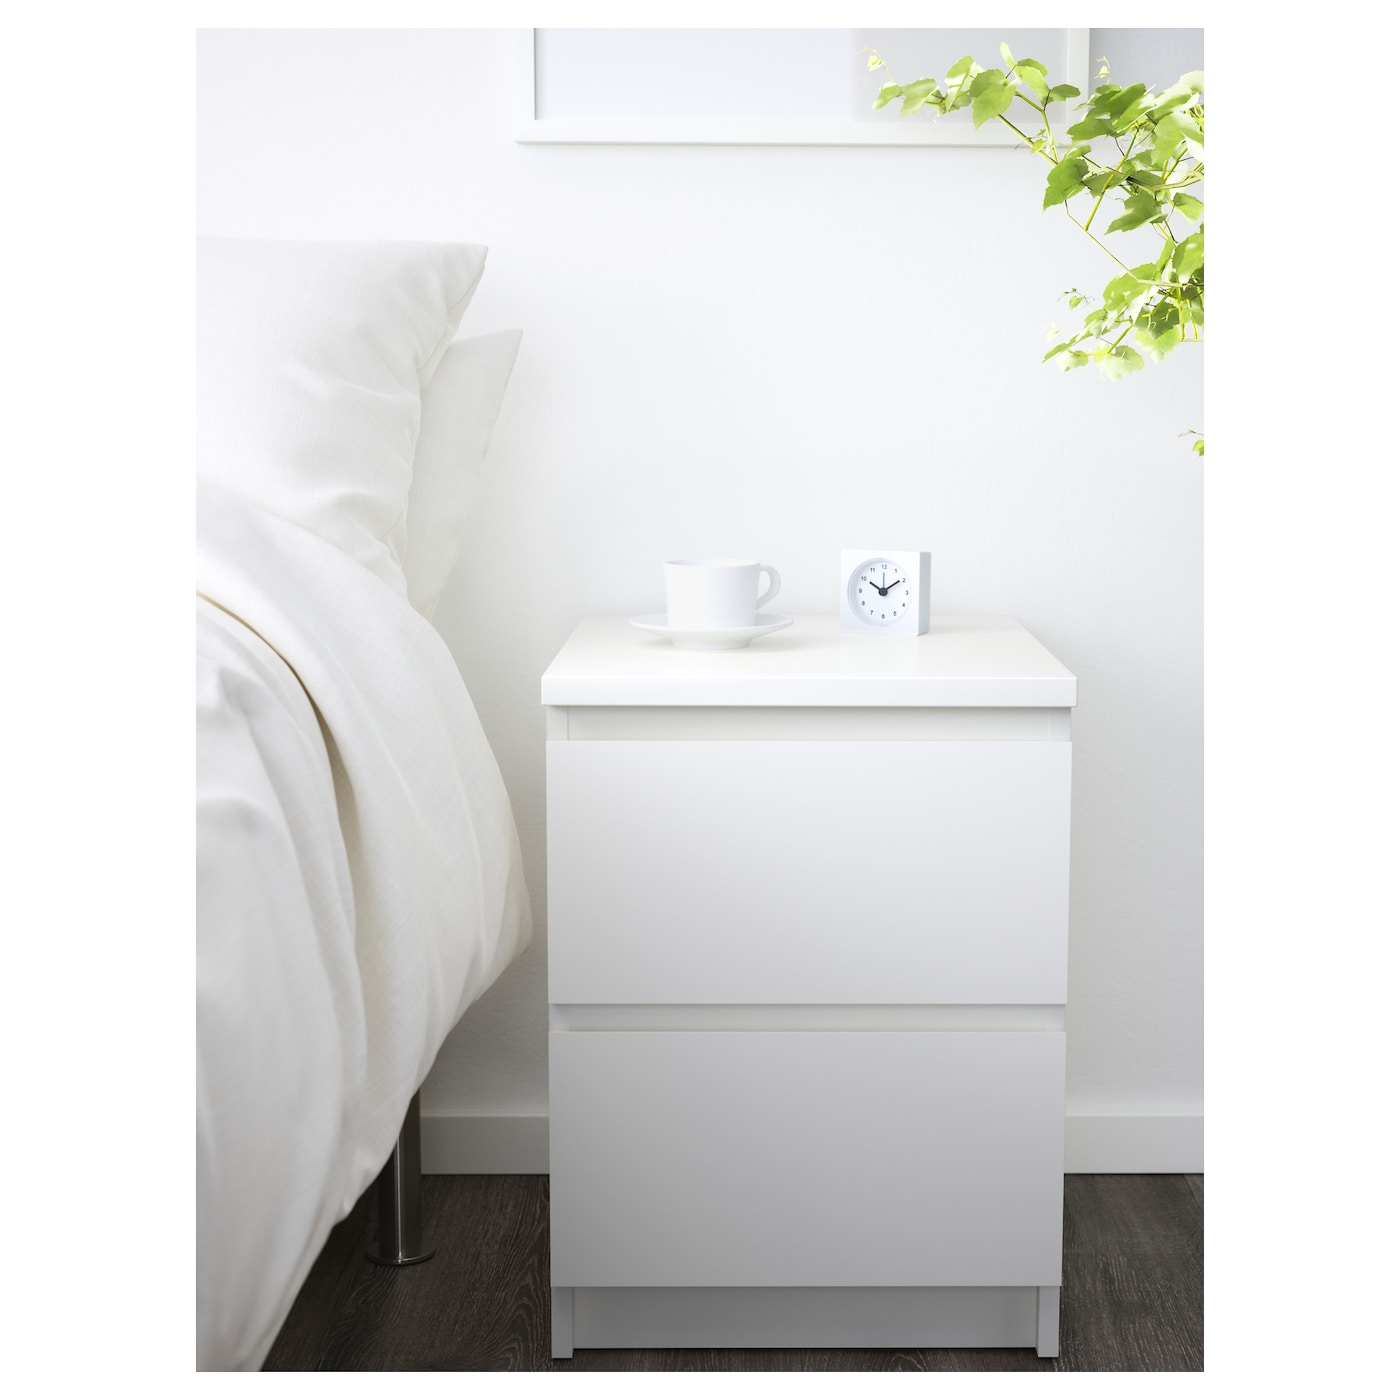 Charmant IKEA MALM Chest Of 2 Drawers Can Also Be Used As A Bedside Table.